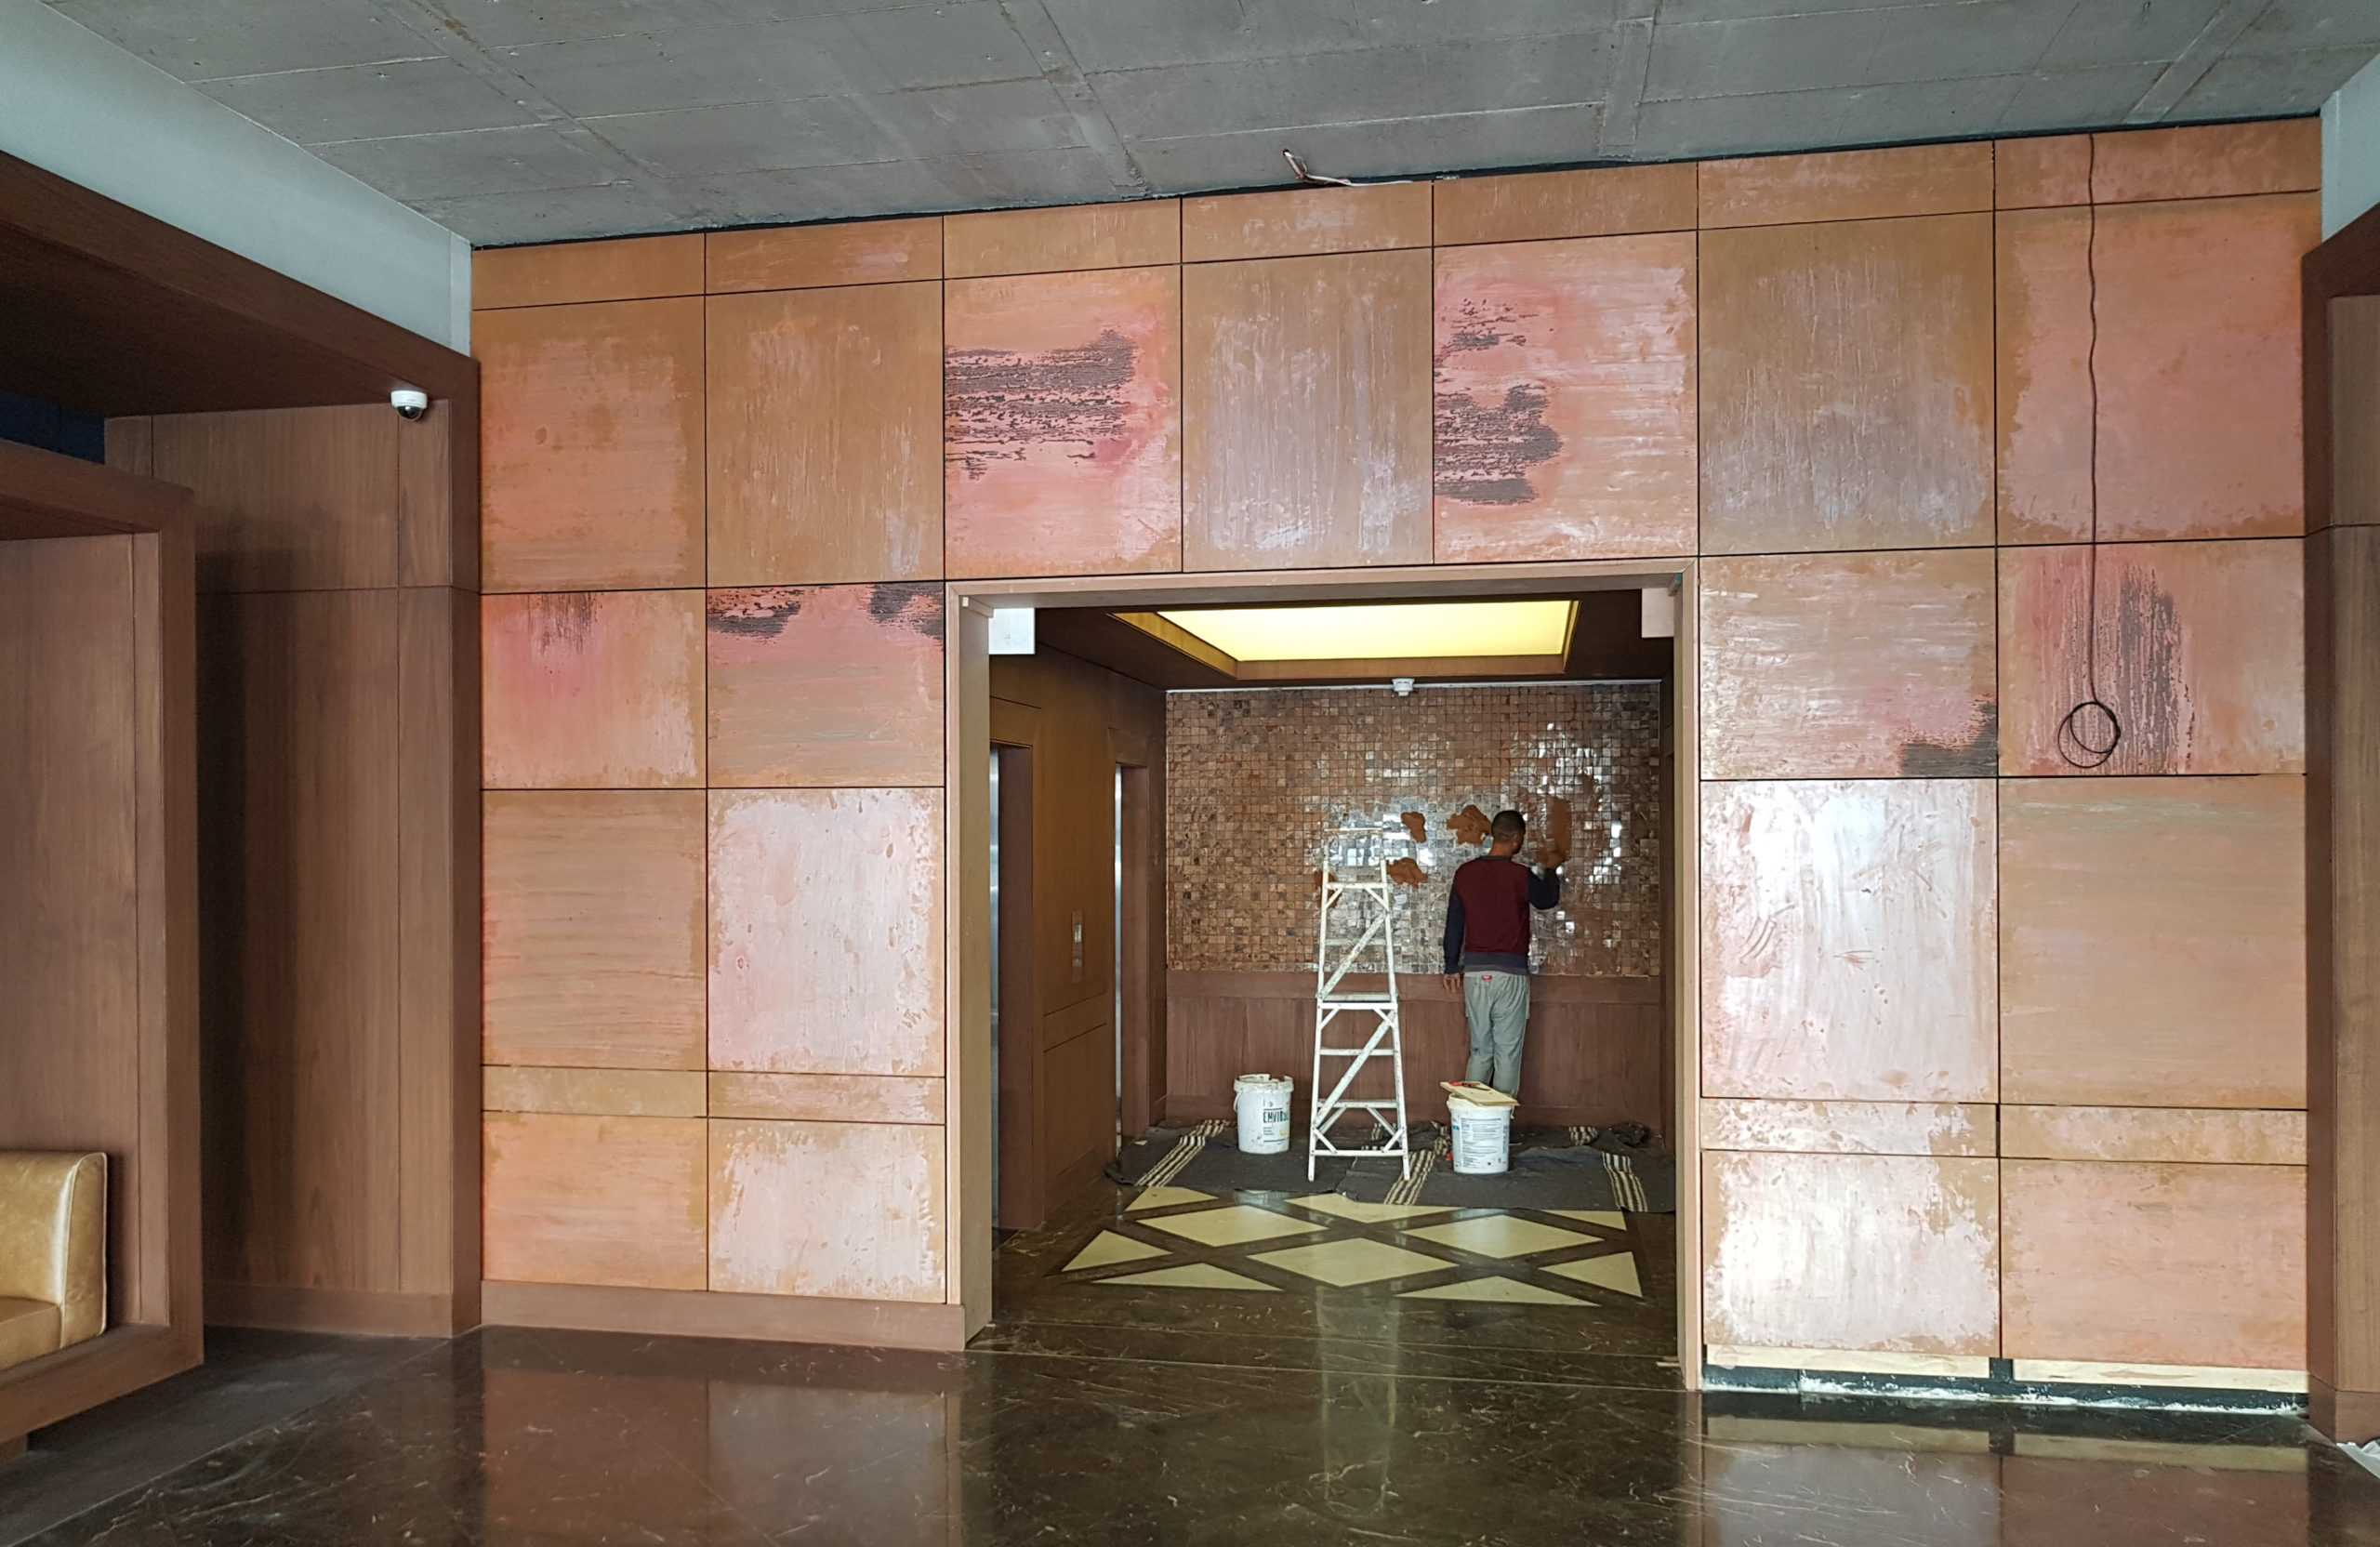 80 On Strand Lift Lobby Project1